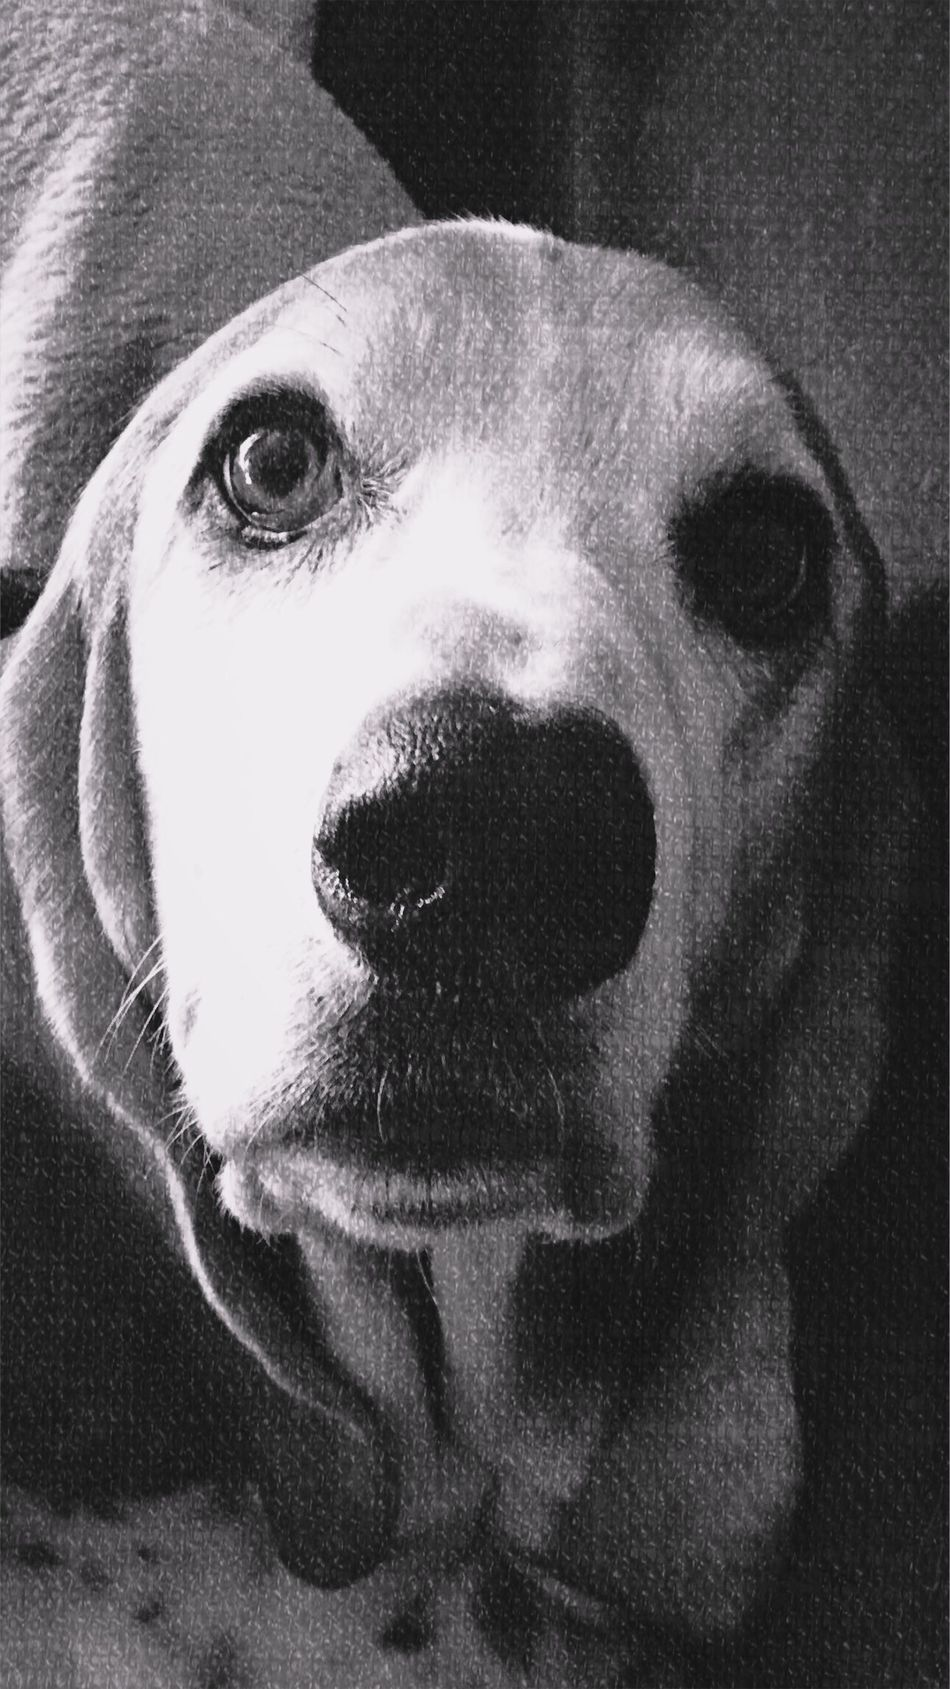 My handsome boy Cooper Dog Pets One Animal Looking At Camera Close-up Portrait Indoors  Blackandwhite Photography Iphonephotography Relaxedand Happy Looking At Camera Ilovemybassethound Pampered Pooch Relaxeddoggie Bassethoundsare Best Bassethound Moments Black And White Photography